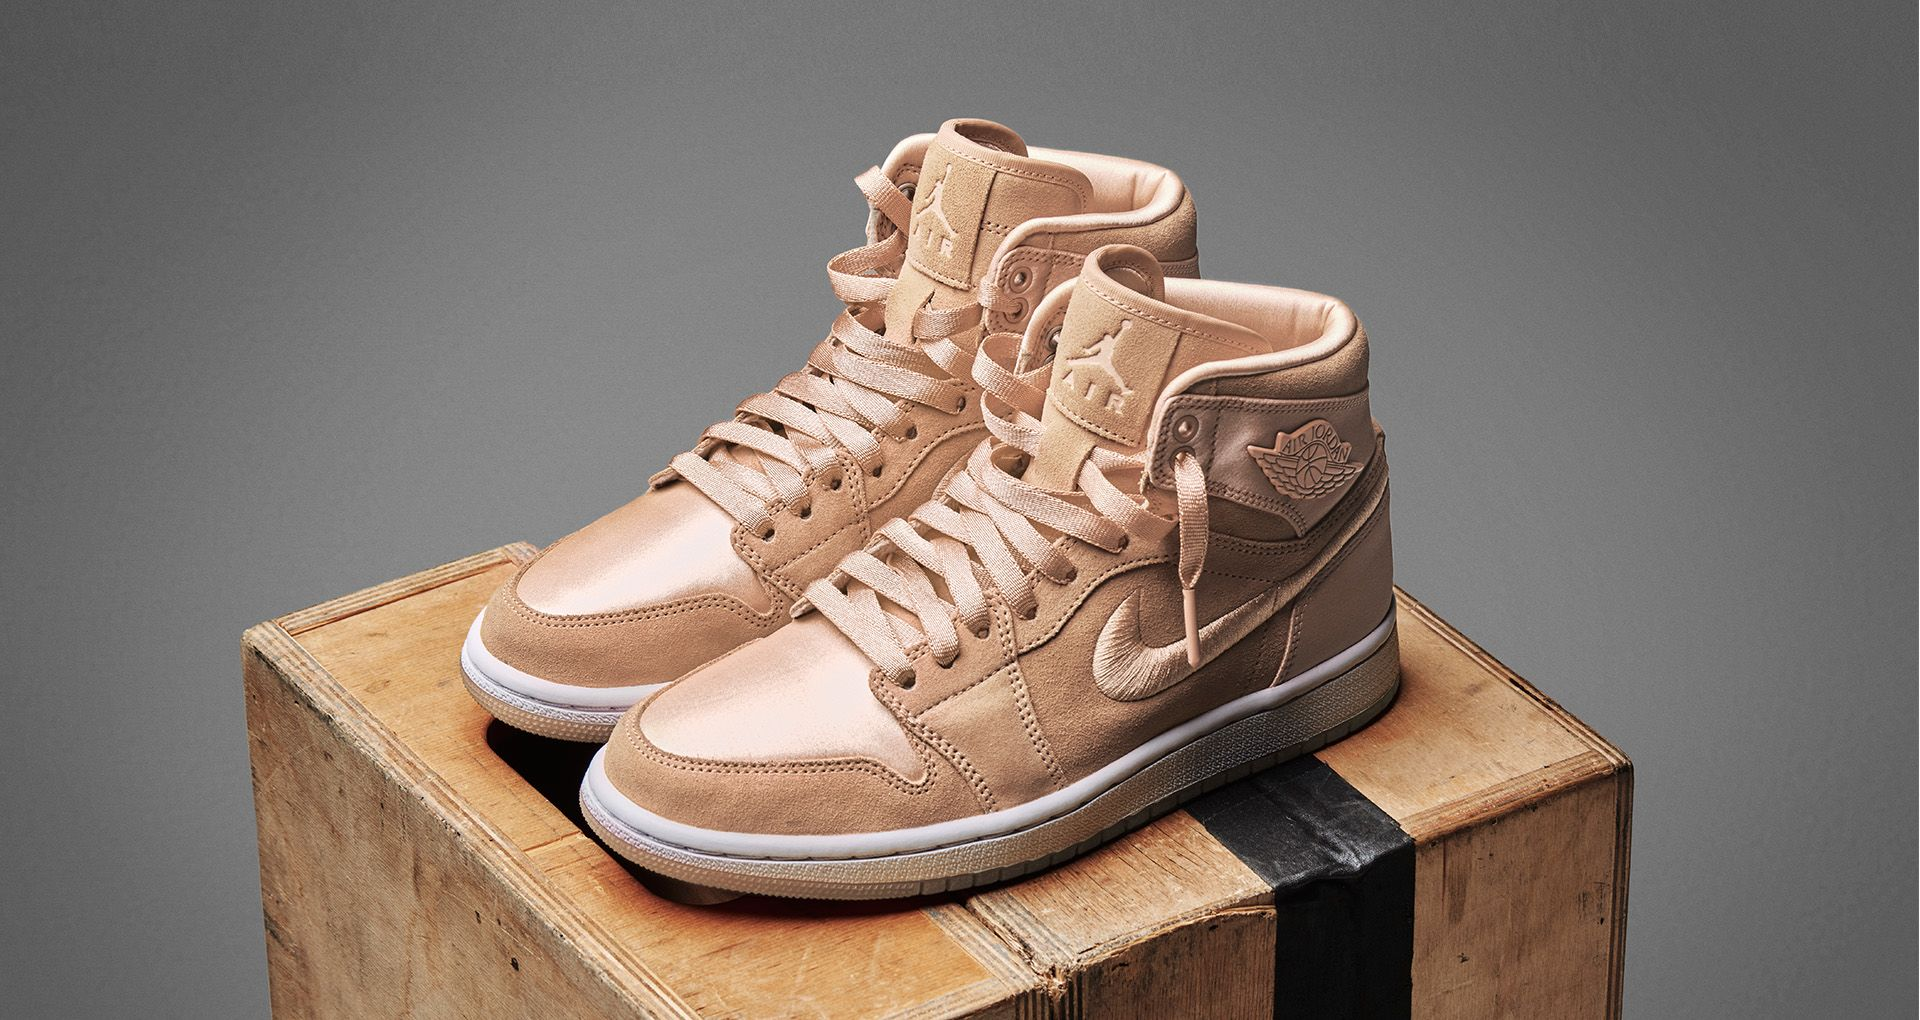 10b937ebb52144 Women s Air Jordan 1 Retro High  Ice Peach  Release Date. Nike⁠+ SNKRS